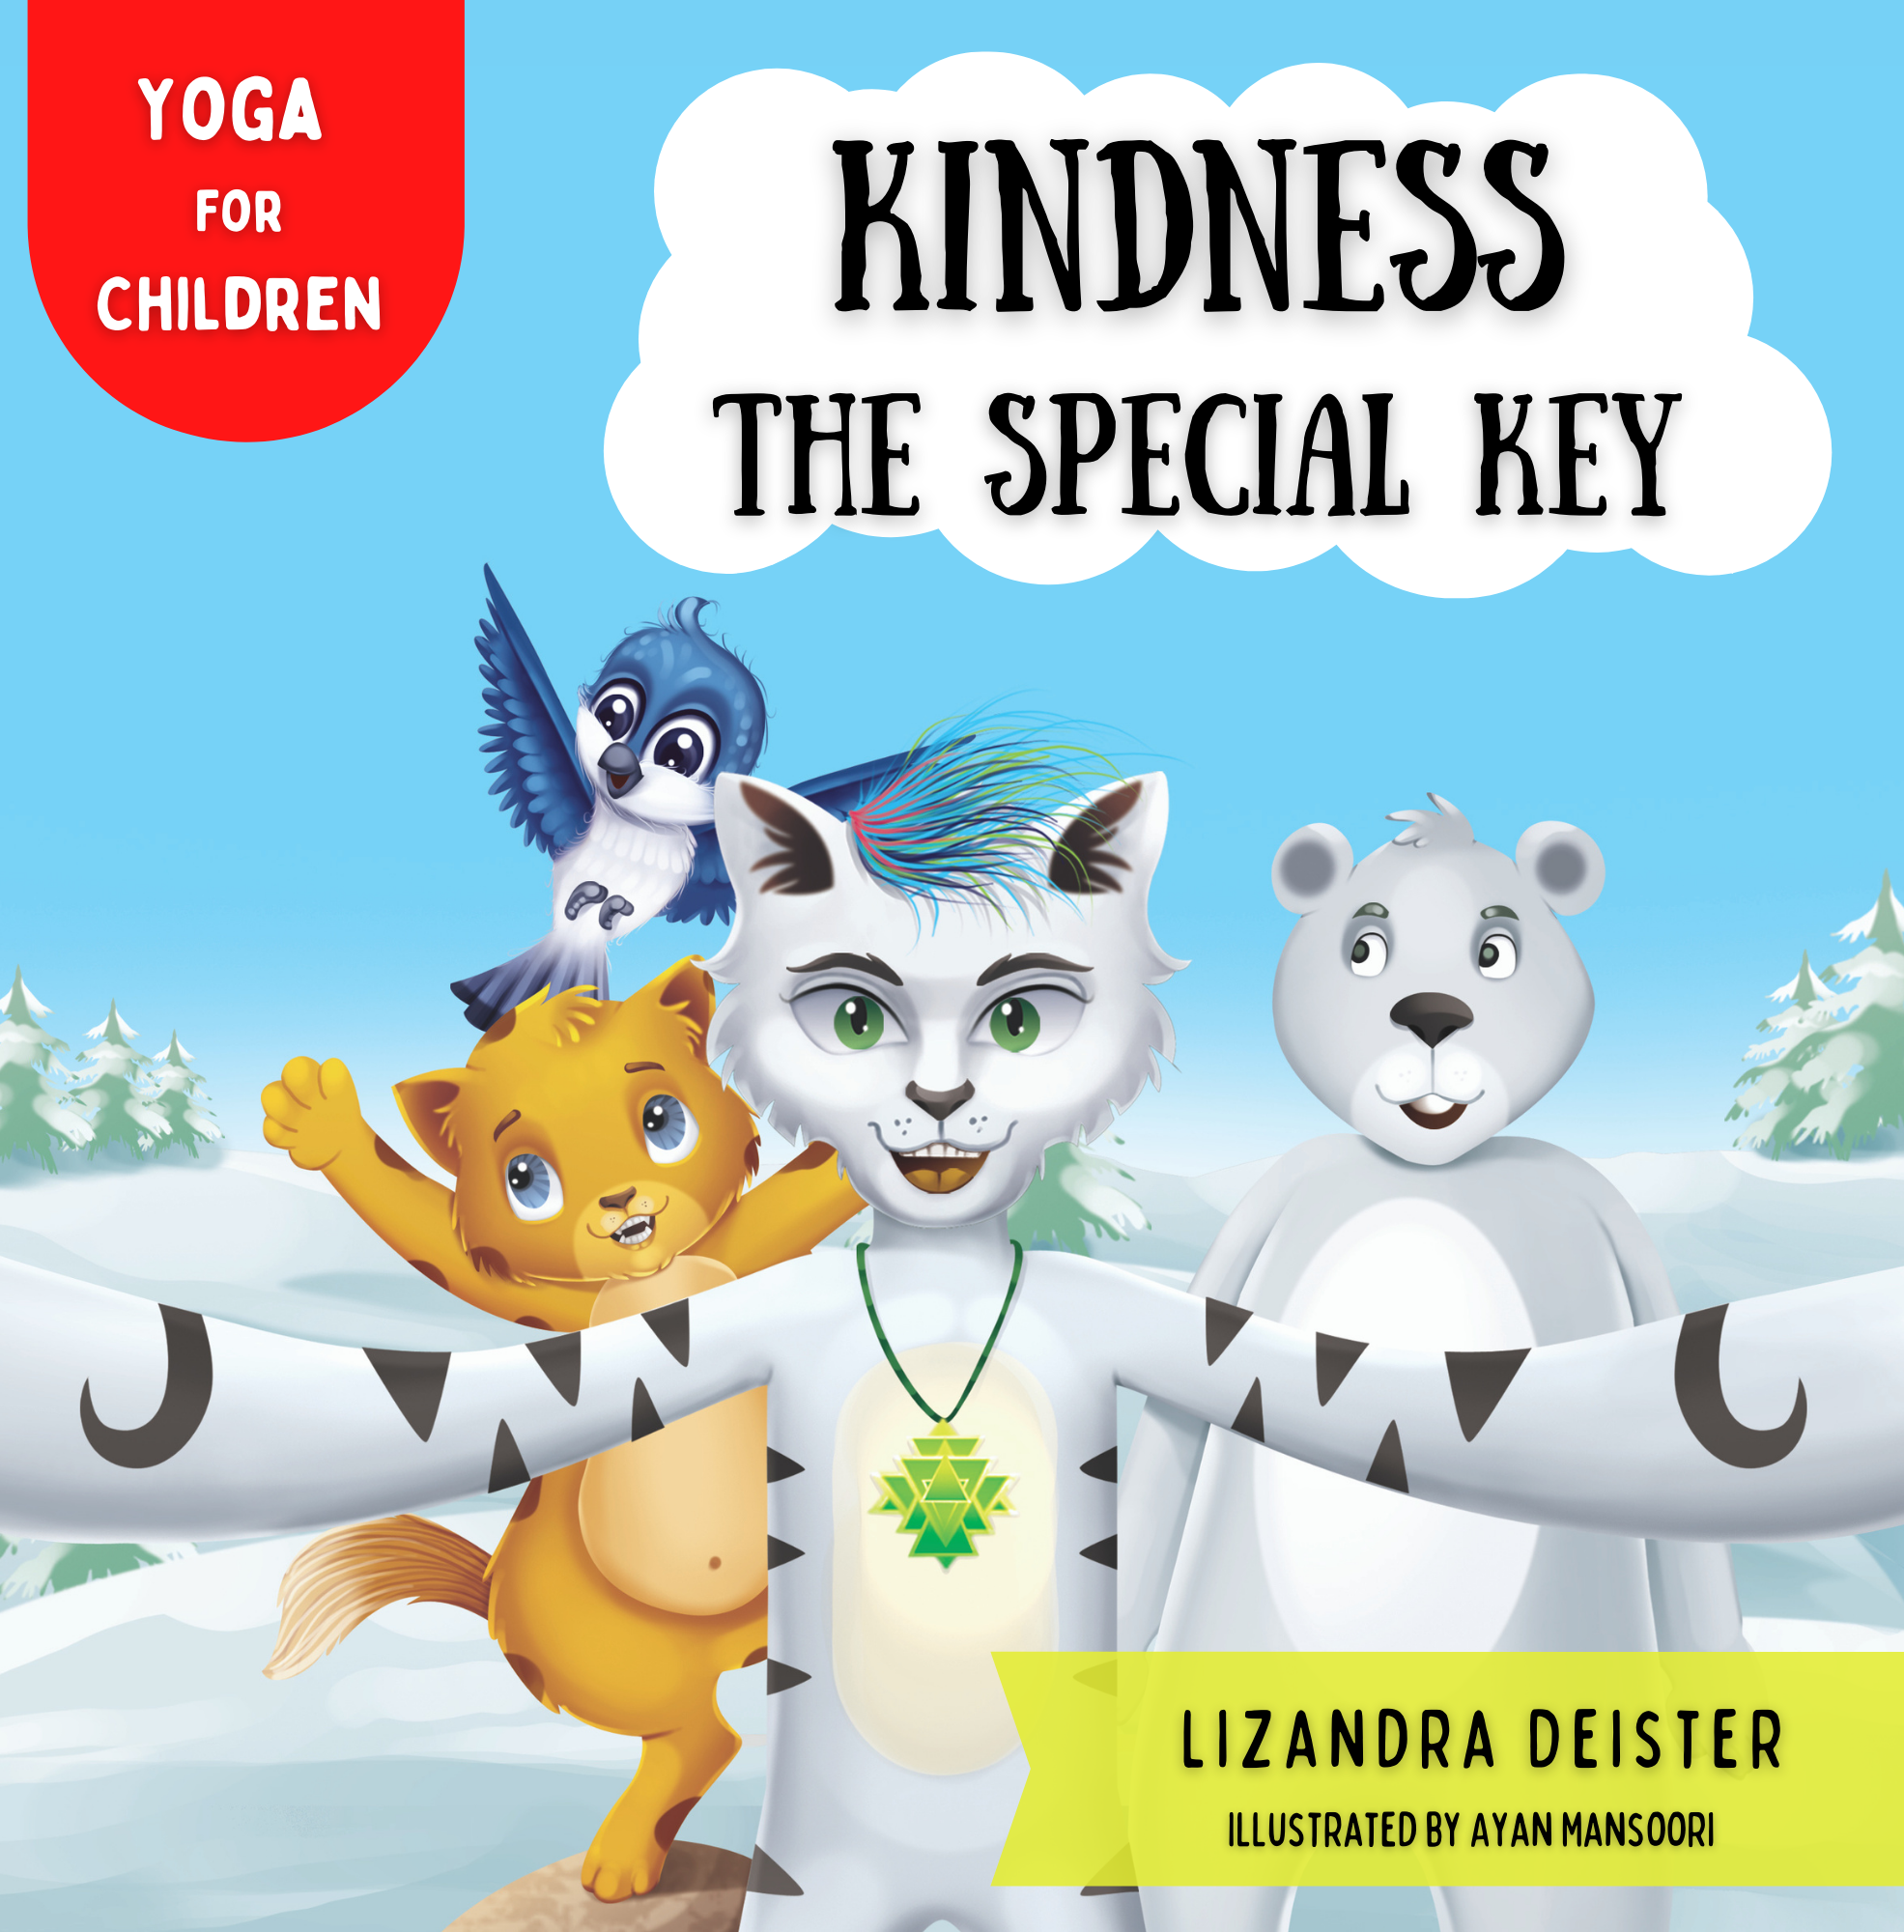 Kindness: The Special Key, Kindle kindness, kindle book, kindle for children, kindle unlimited for children